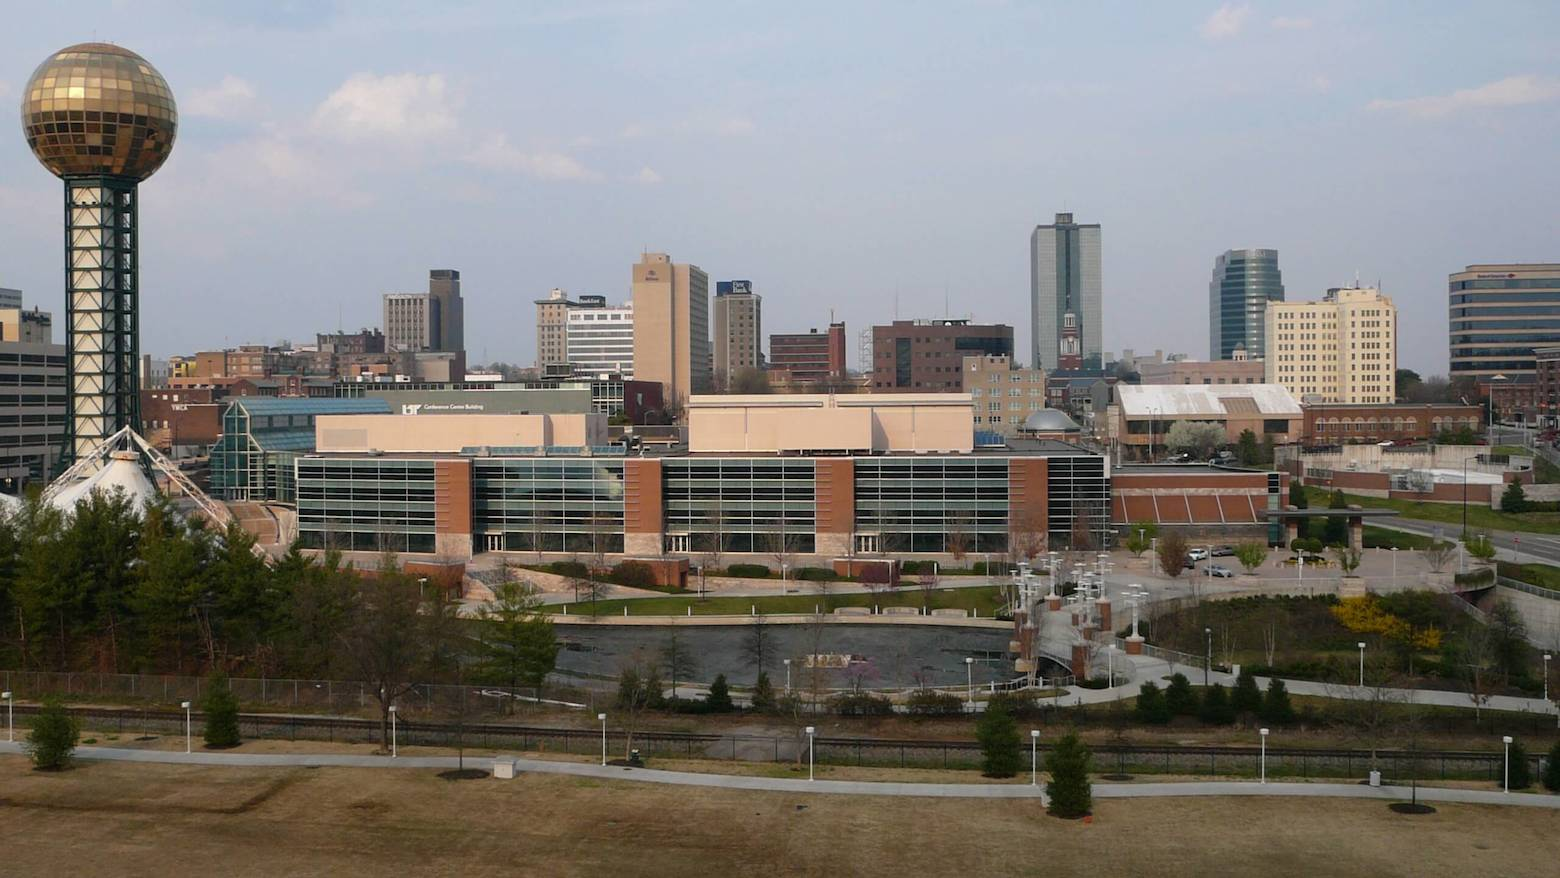 Carless In The Scruffy City How To Live Without A Car In Knoxville Tn